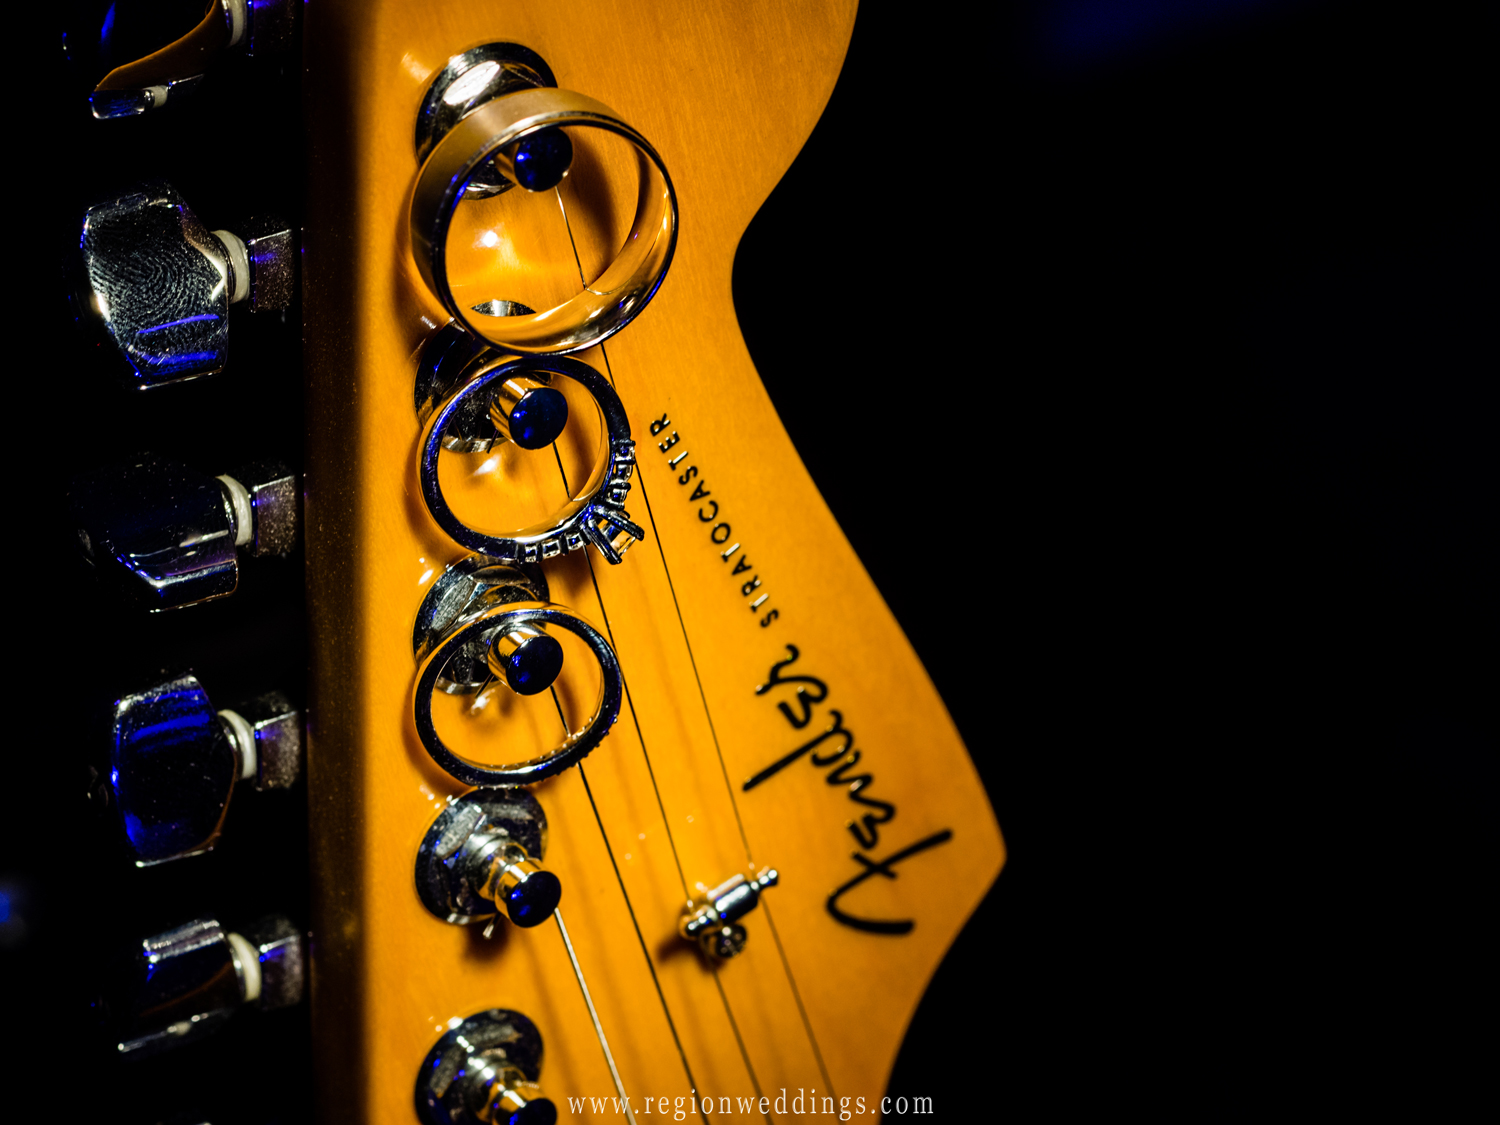 Wedding rings hang from a Fender Stratocaster guitar.